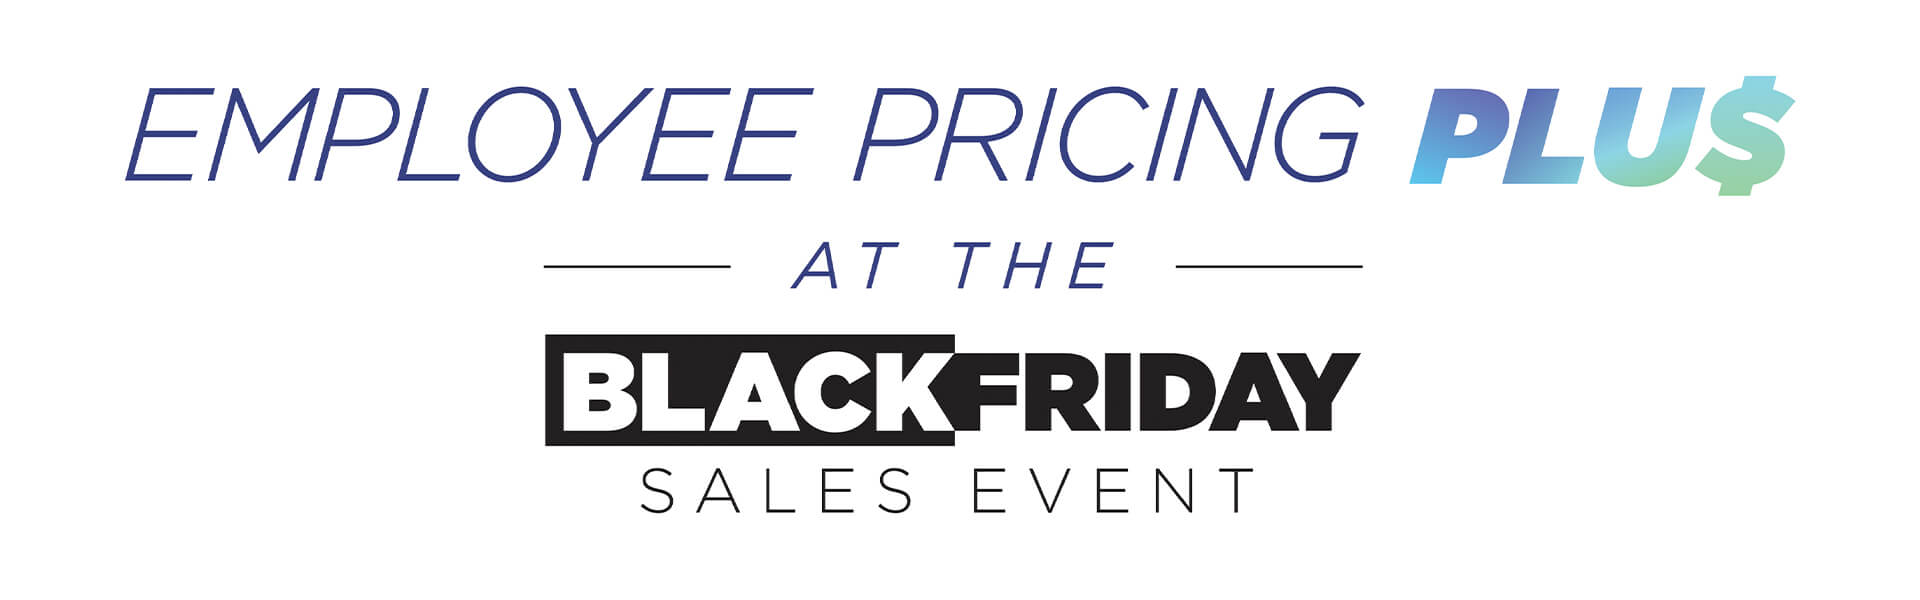 Employee Pricing Plus At The Black Friday Sales Event Logo